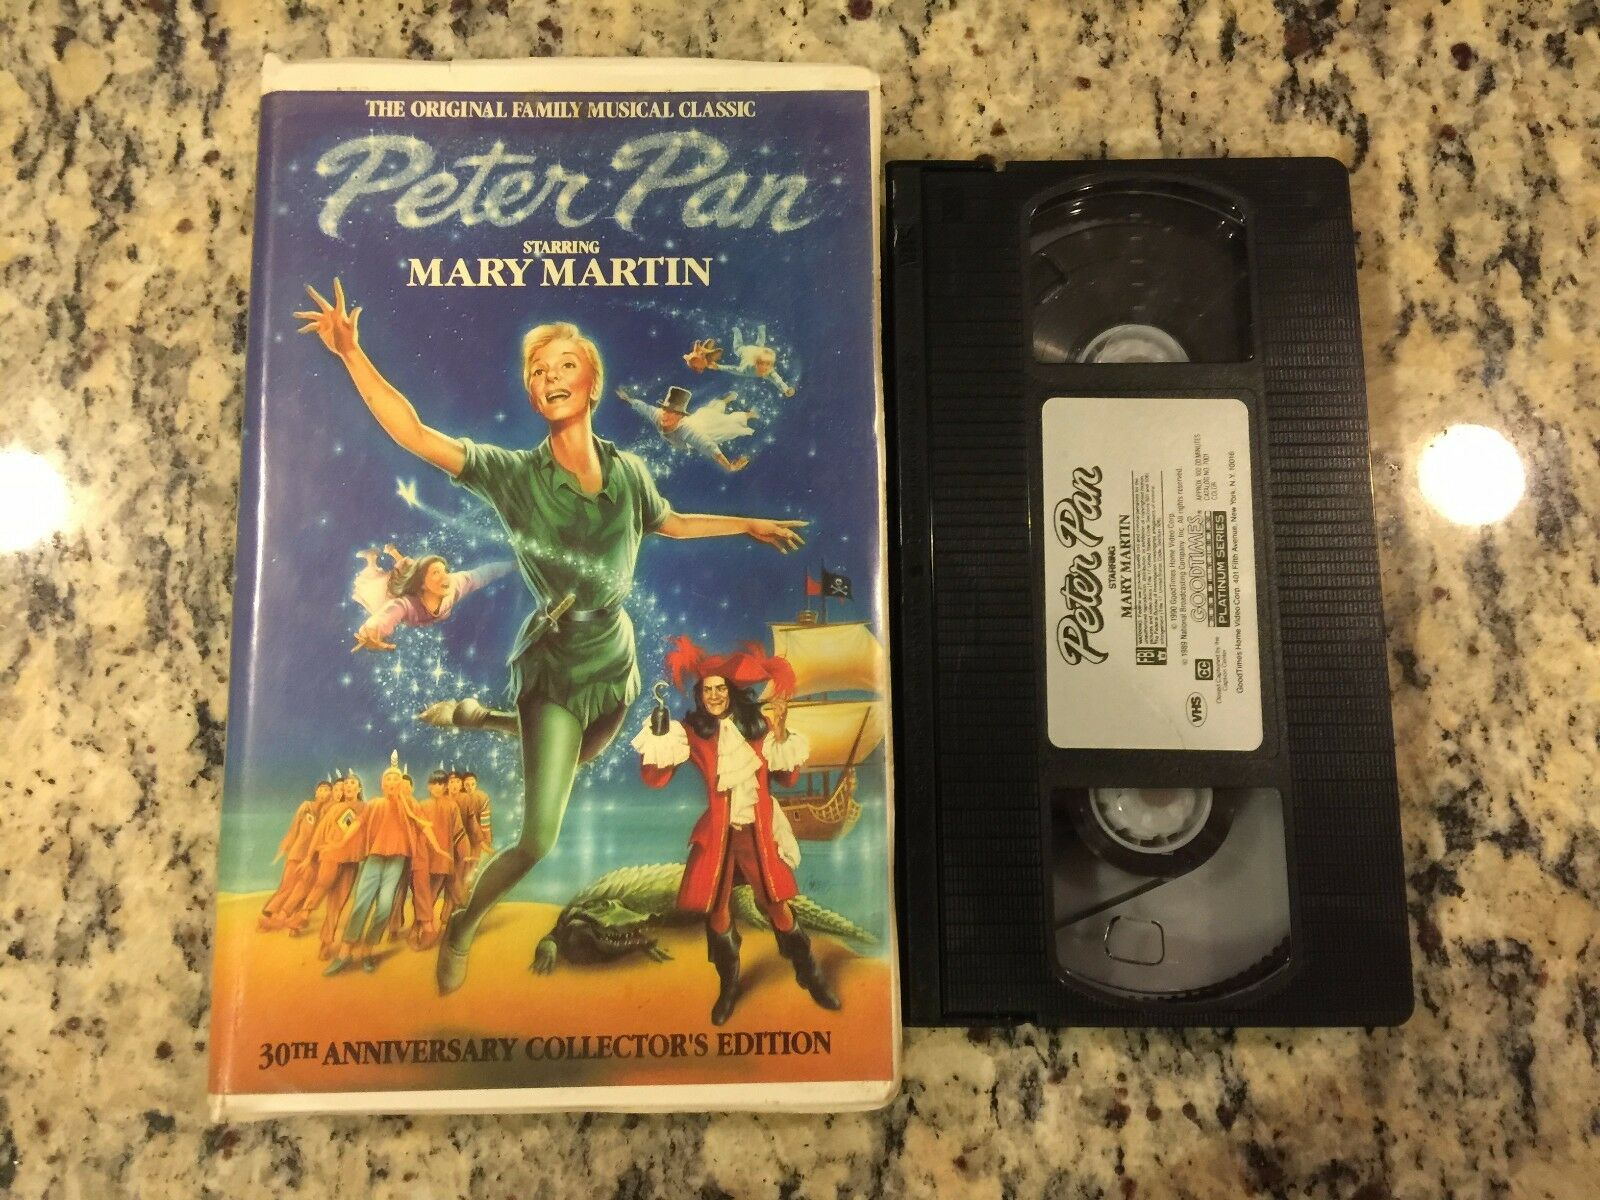 Peter Pan Live Stage Play Version Rare Vhs Htf On Dvd 1960 Mary Martin 1 Of 3Only Available See More